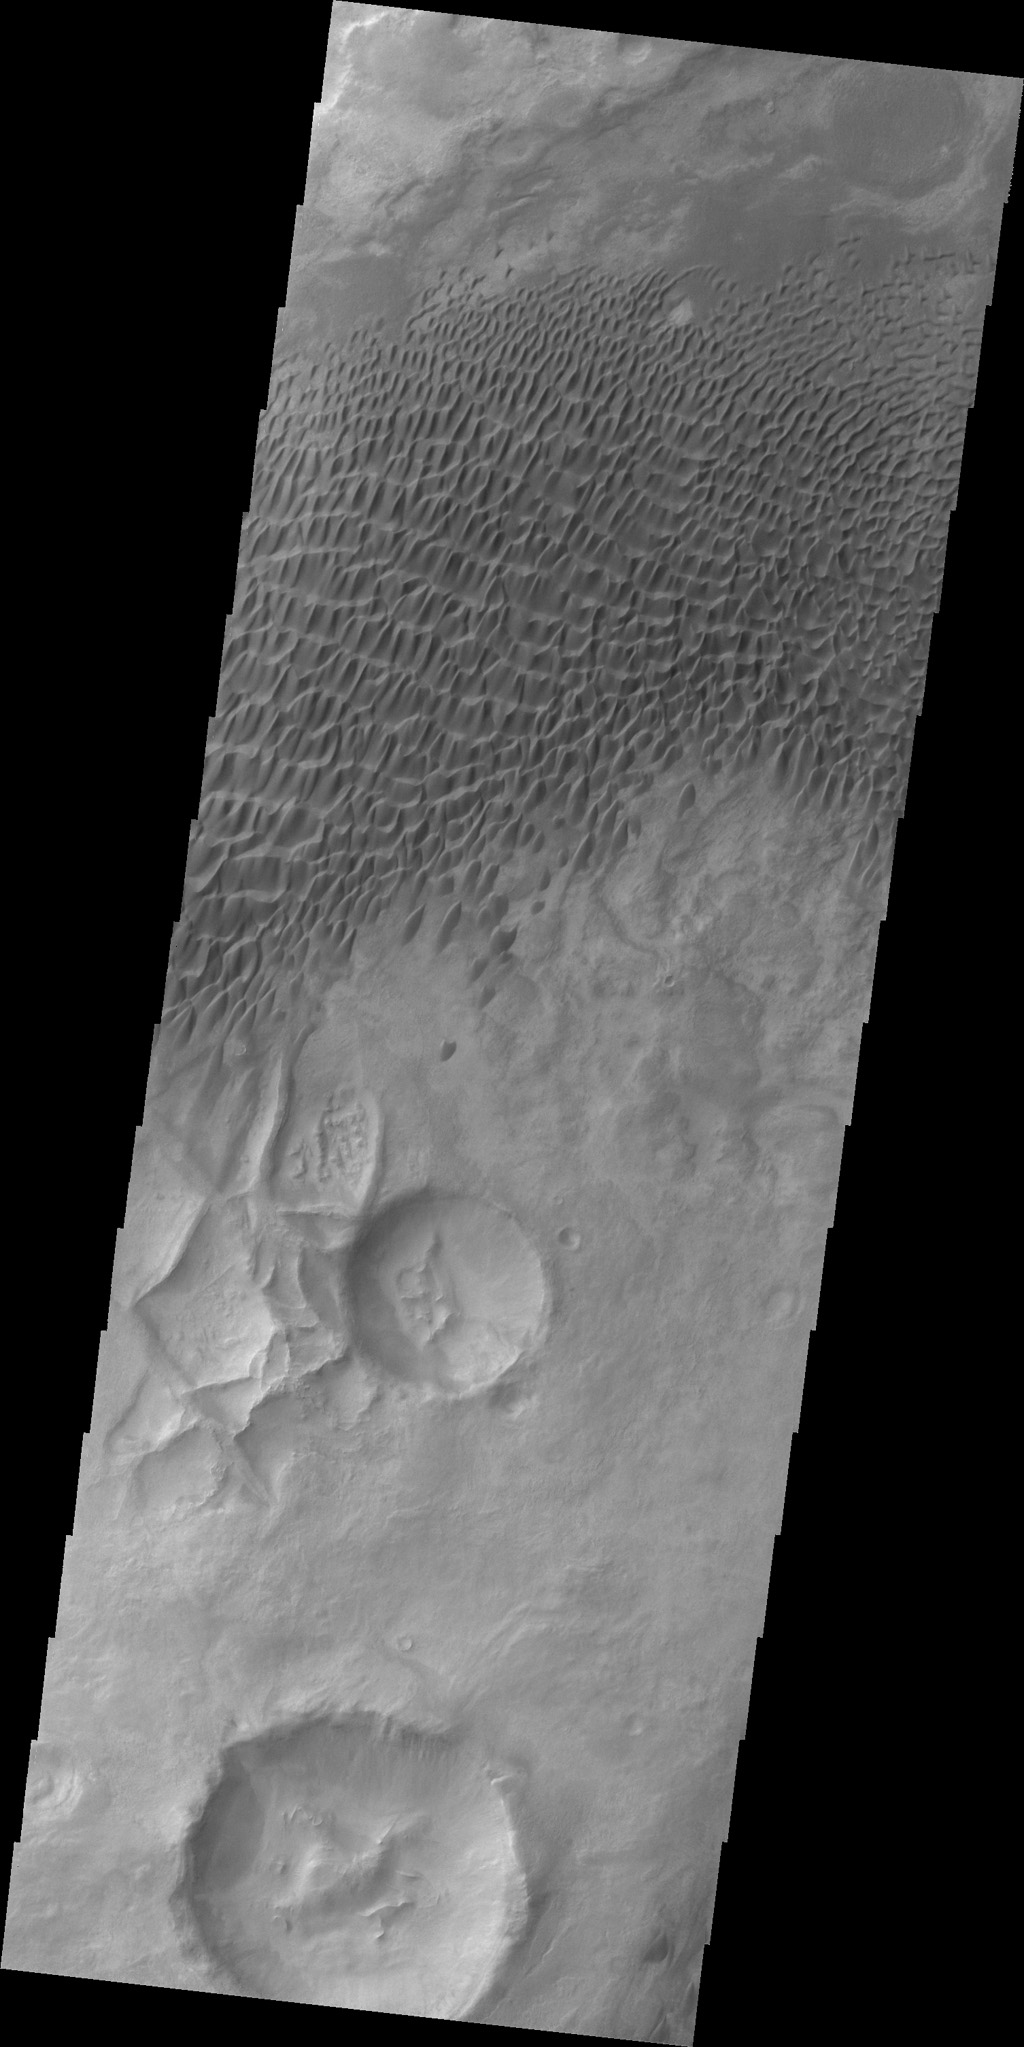 A large sandsheet with surface dune forms is shown in this image of Aonia Terra captured by NASA's 2001 Mars Odyssey spacecraft.